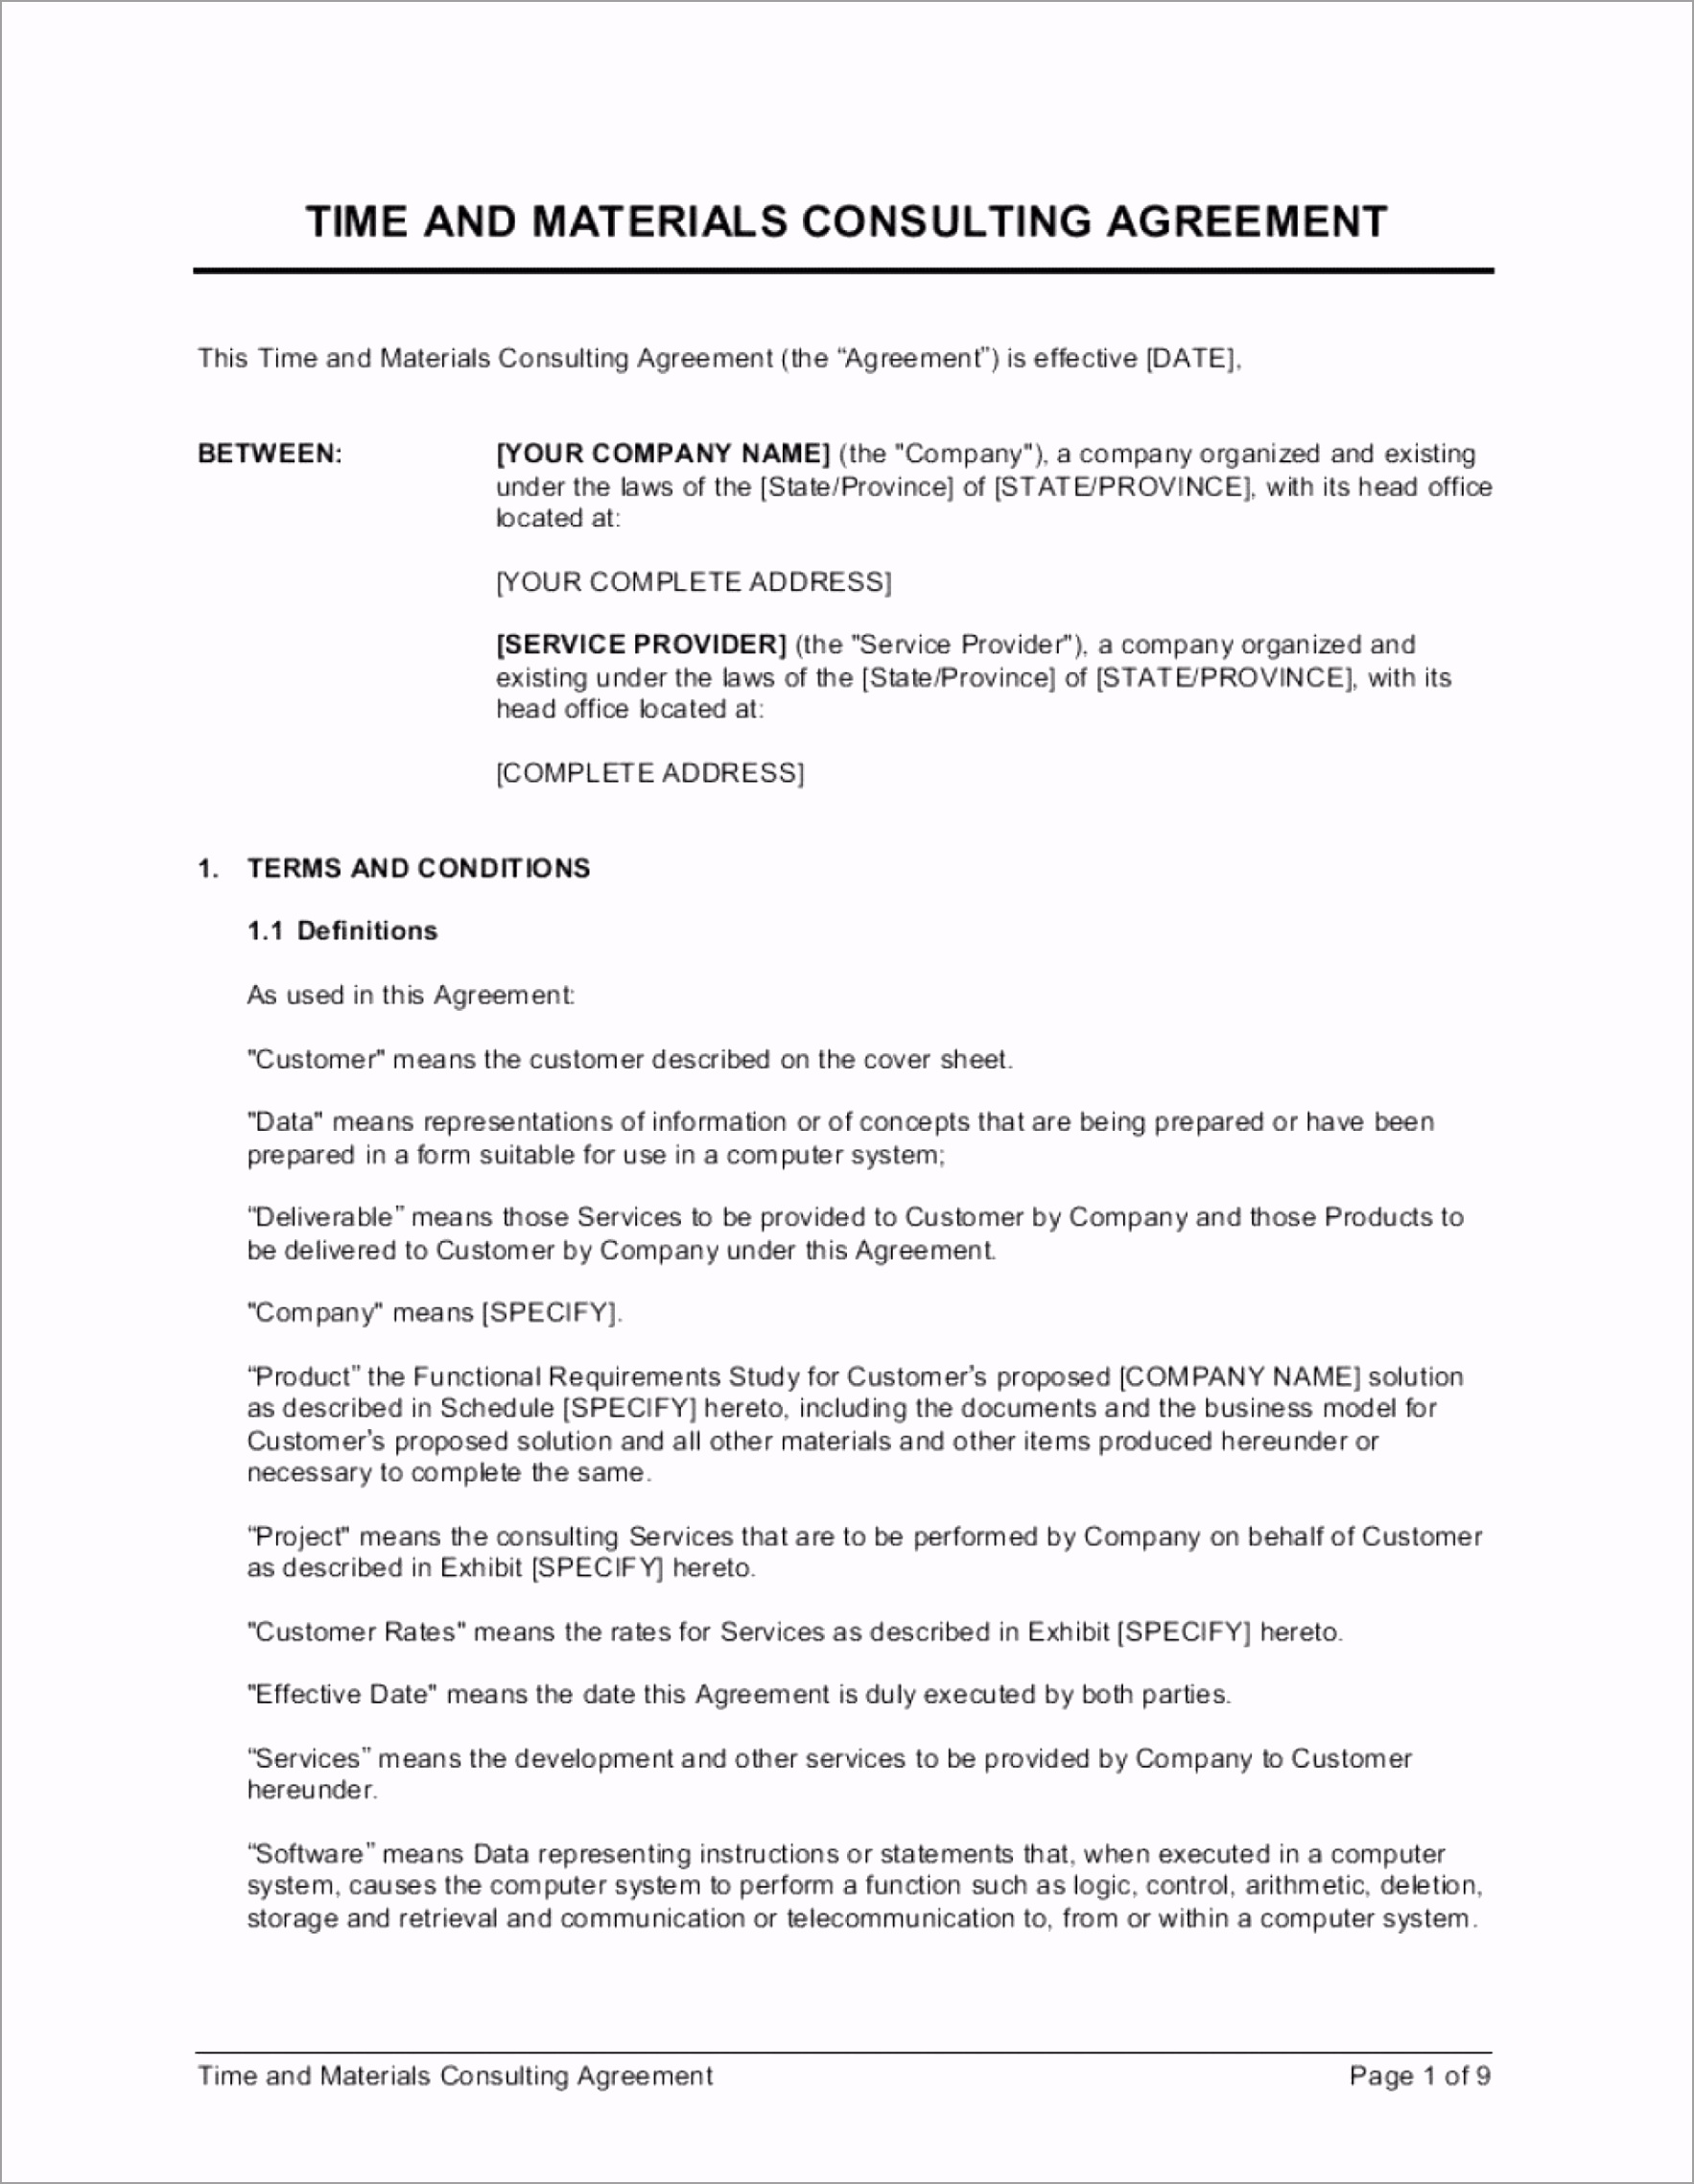 010 fantastic simple consulting agreement template image 1920 2477 pttyt